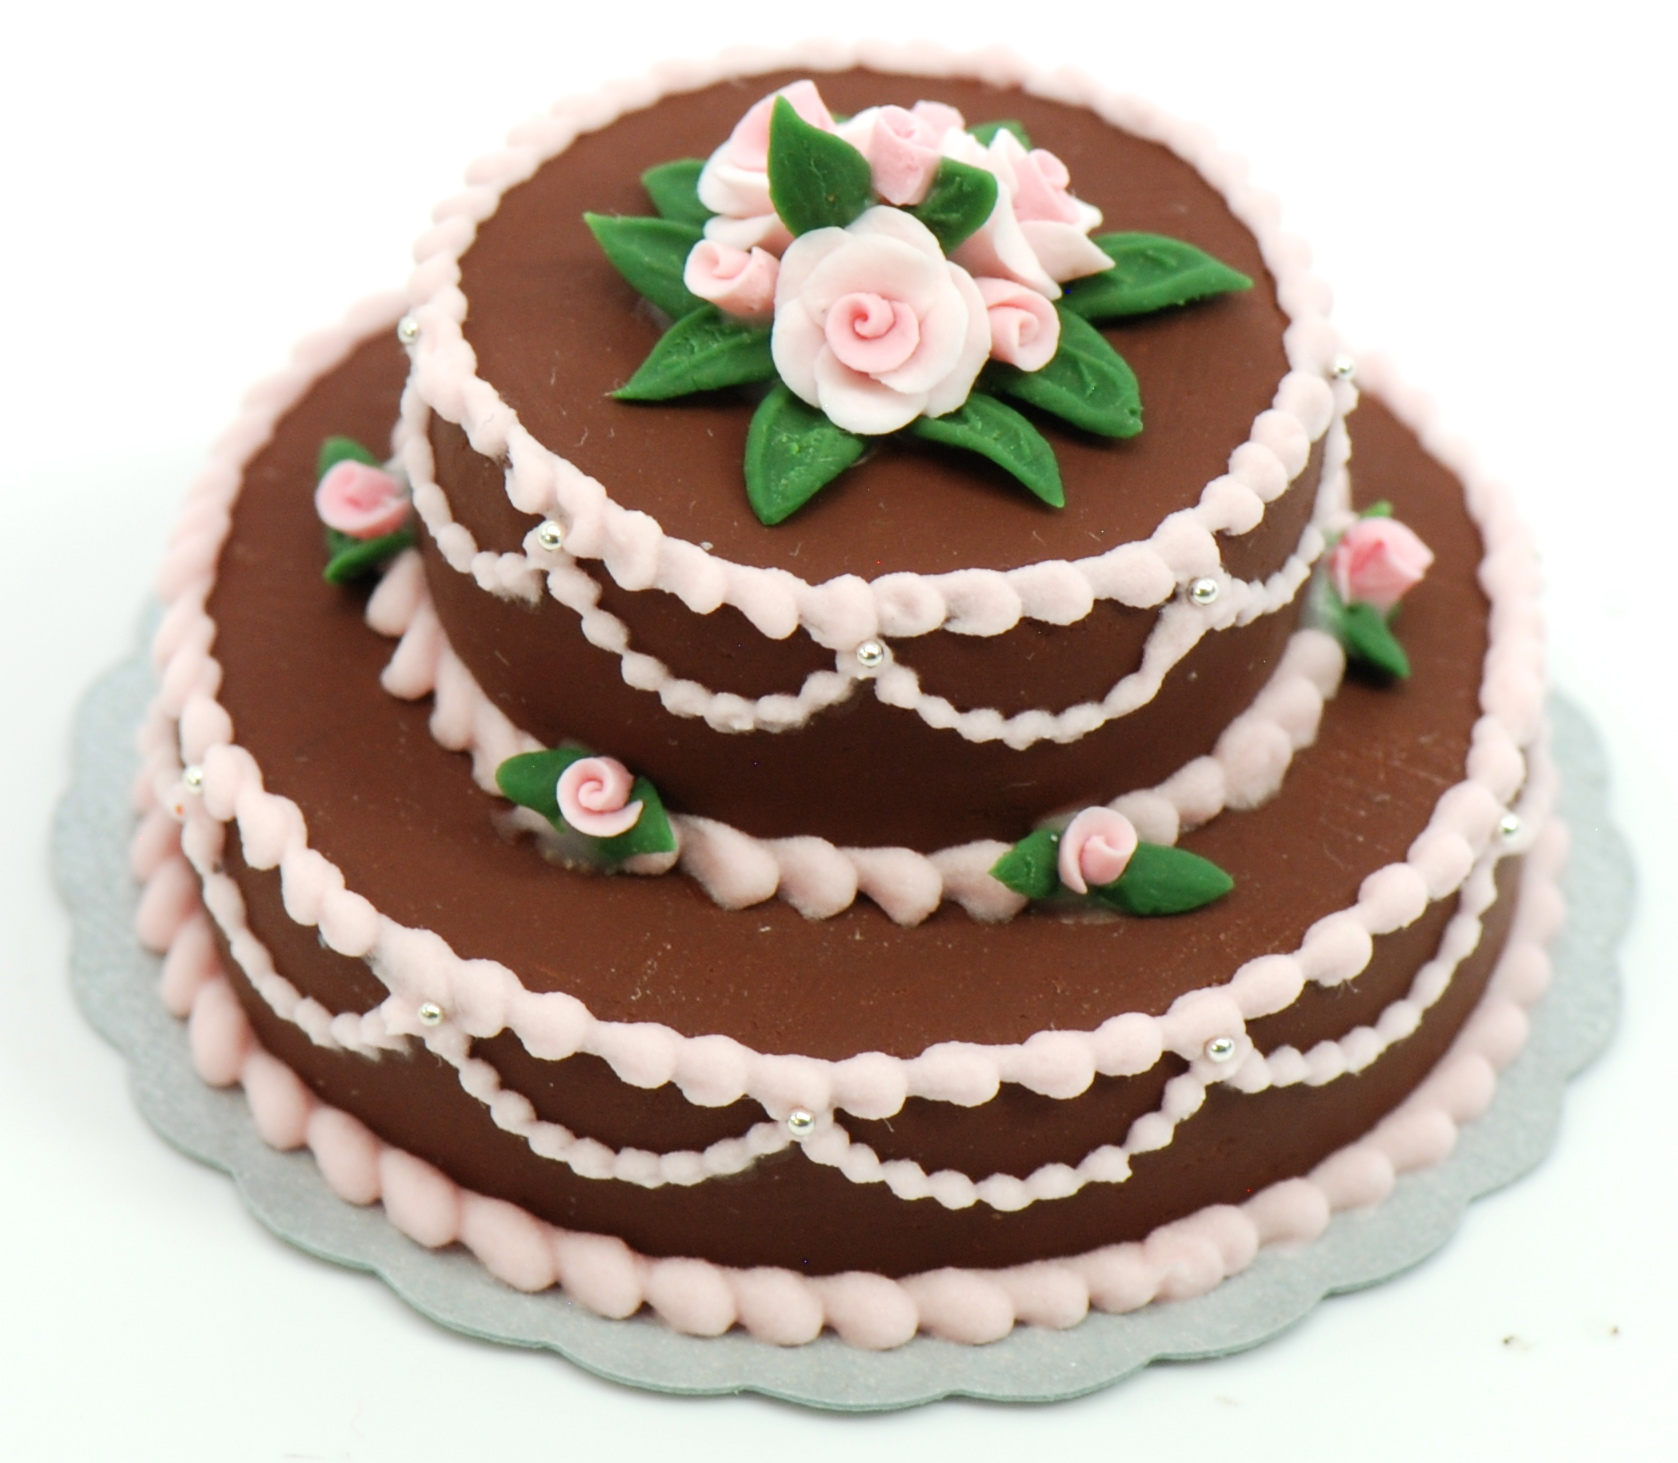 Minature Double Layer Chocolate Cake w/pink roses | Stewart Dollhouse ...